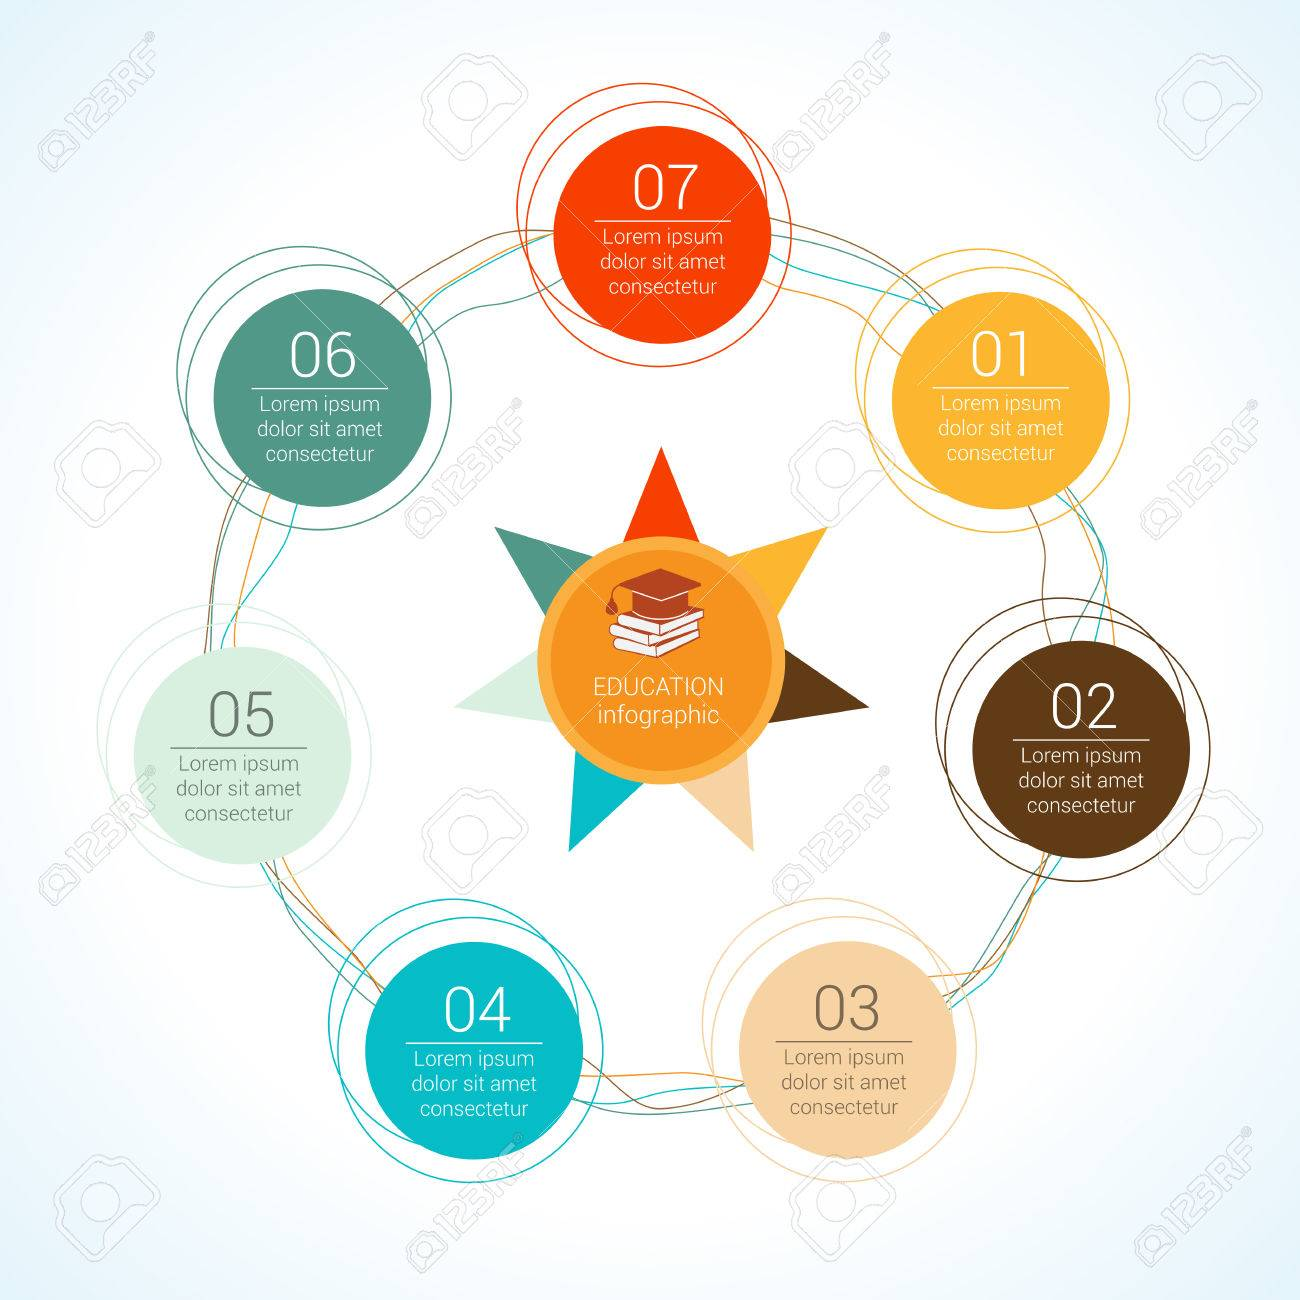 template circular vector education infographic for presentation